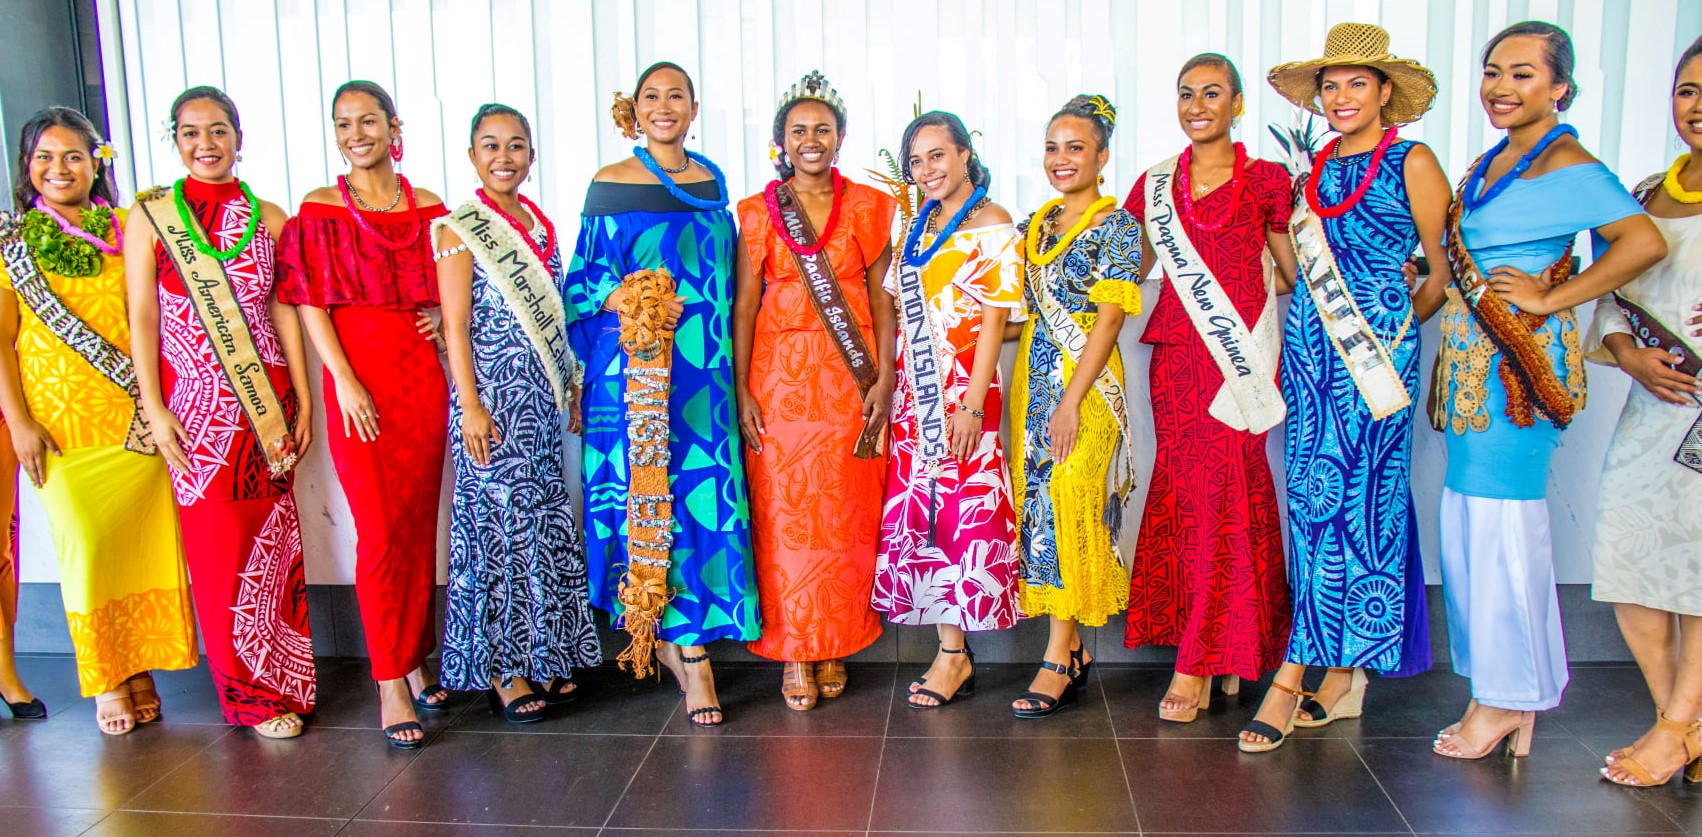 2019 Miss Pacific Islands Pageant Contestants at Loloata Island Resort